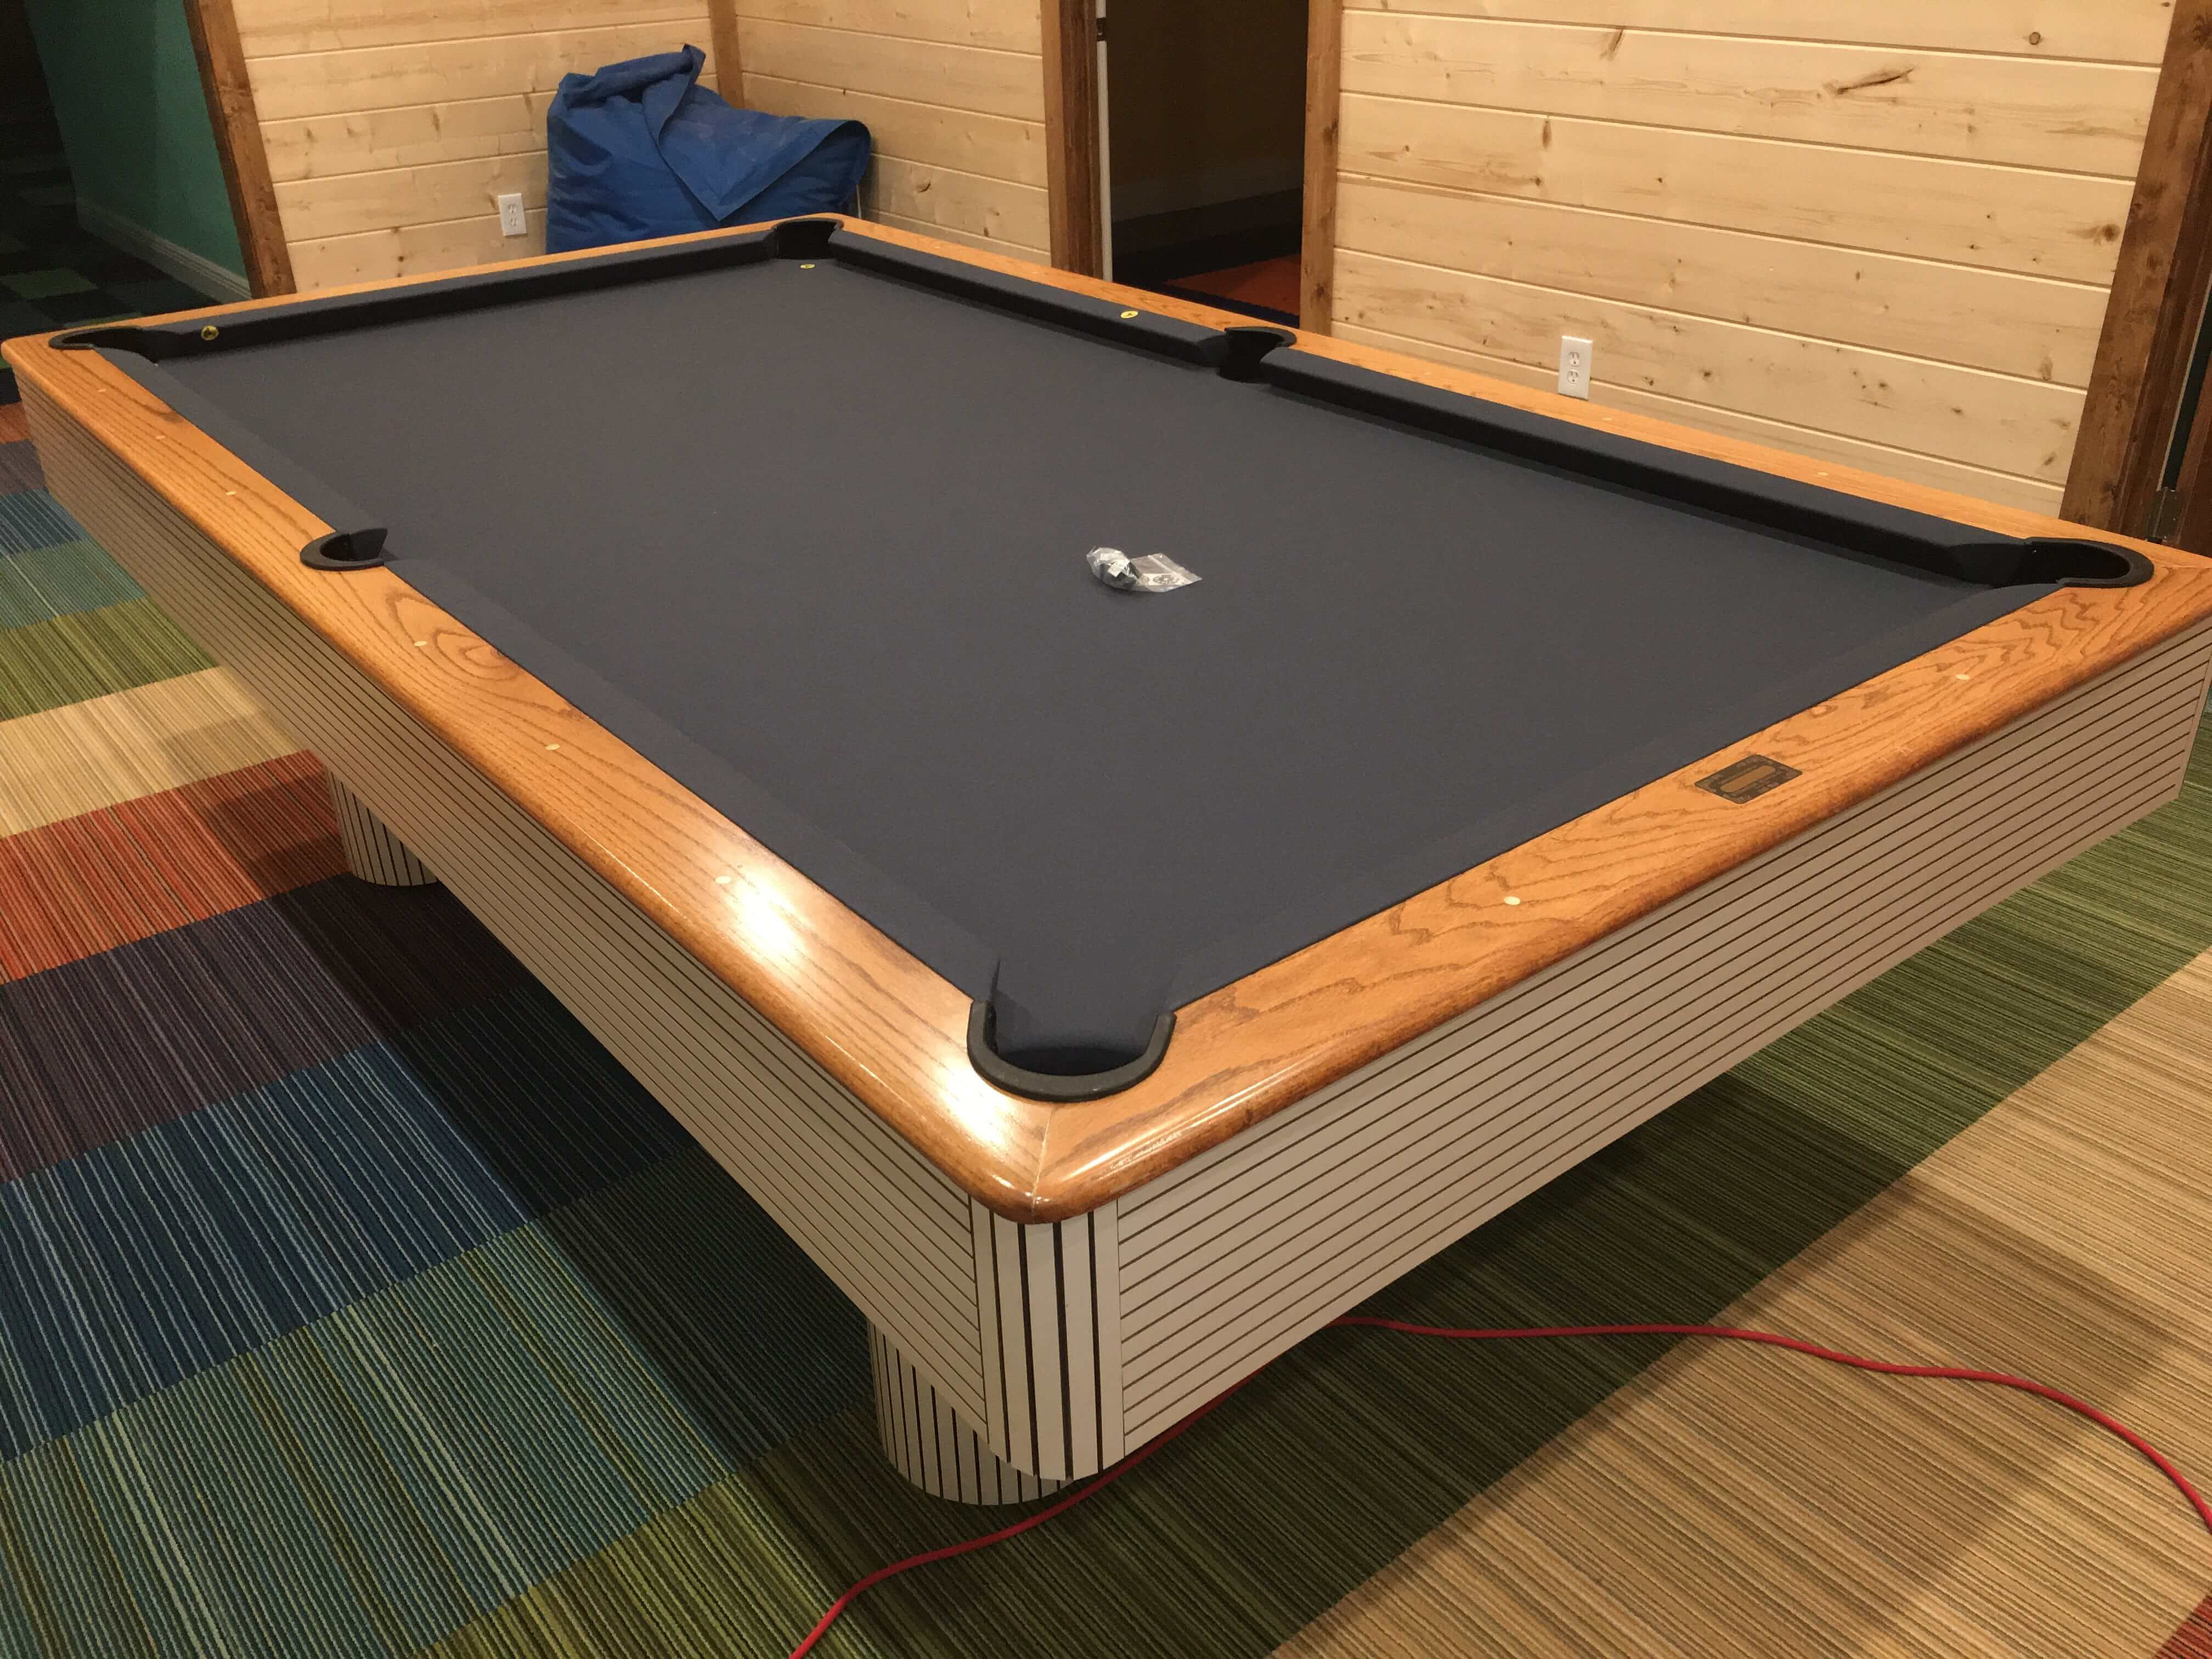 Etonnant Pool Table Crew The No1 Pool Table Service U0026 Pool Table Movers Houston | Pool  Table Moving Company.